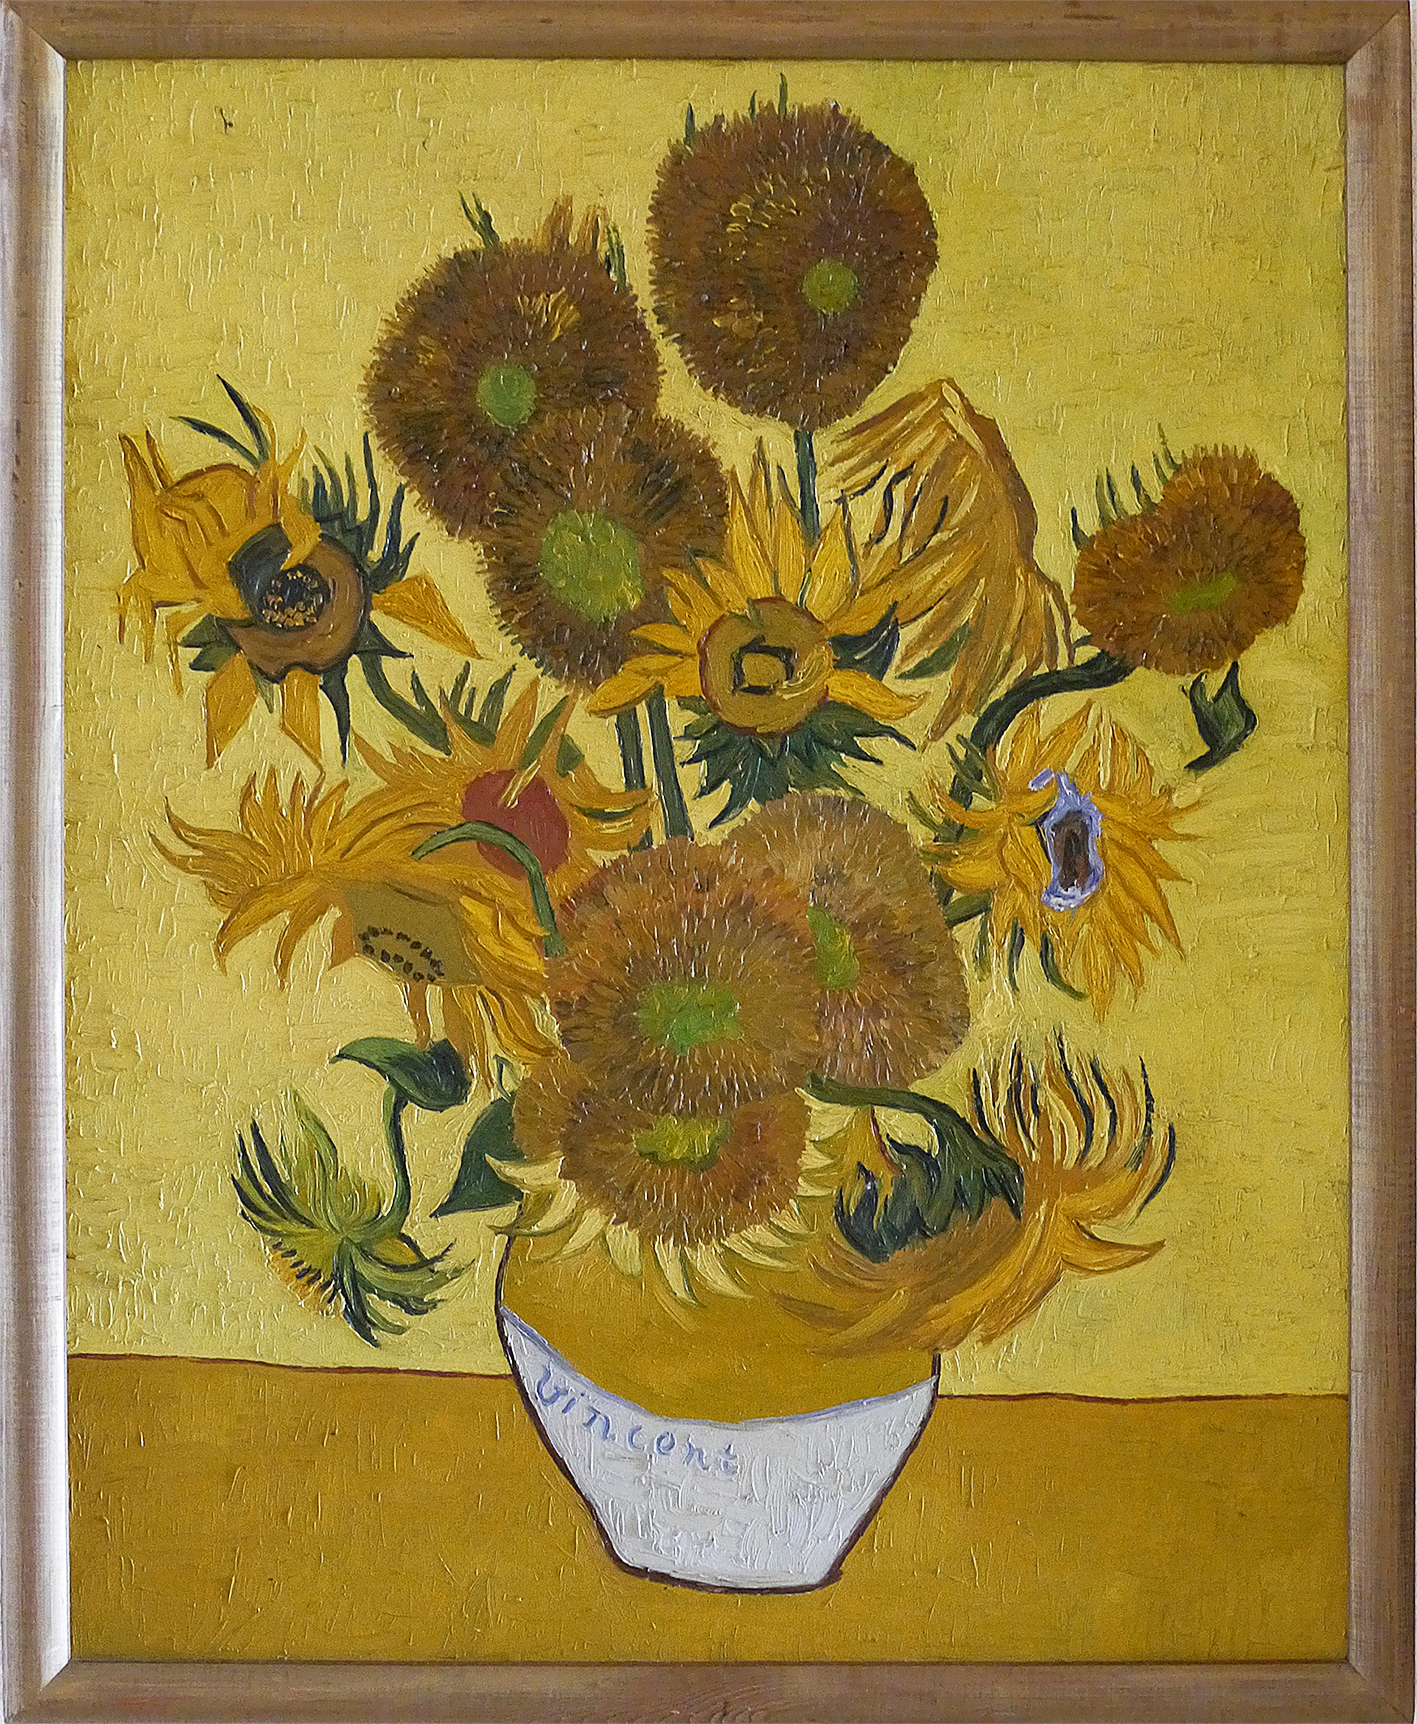 The best hand-painted copy of Vincent van Gogh's Sunflowers ever made Cornell van Loon